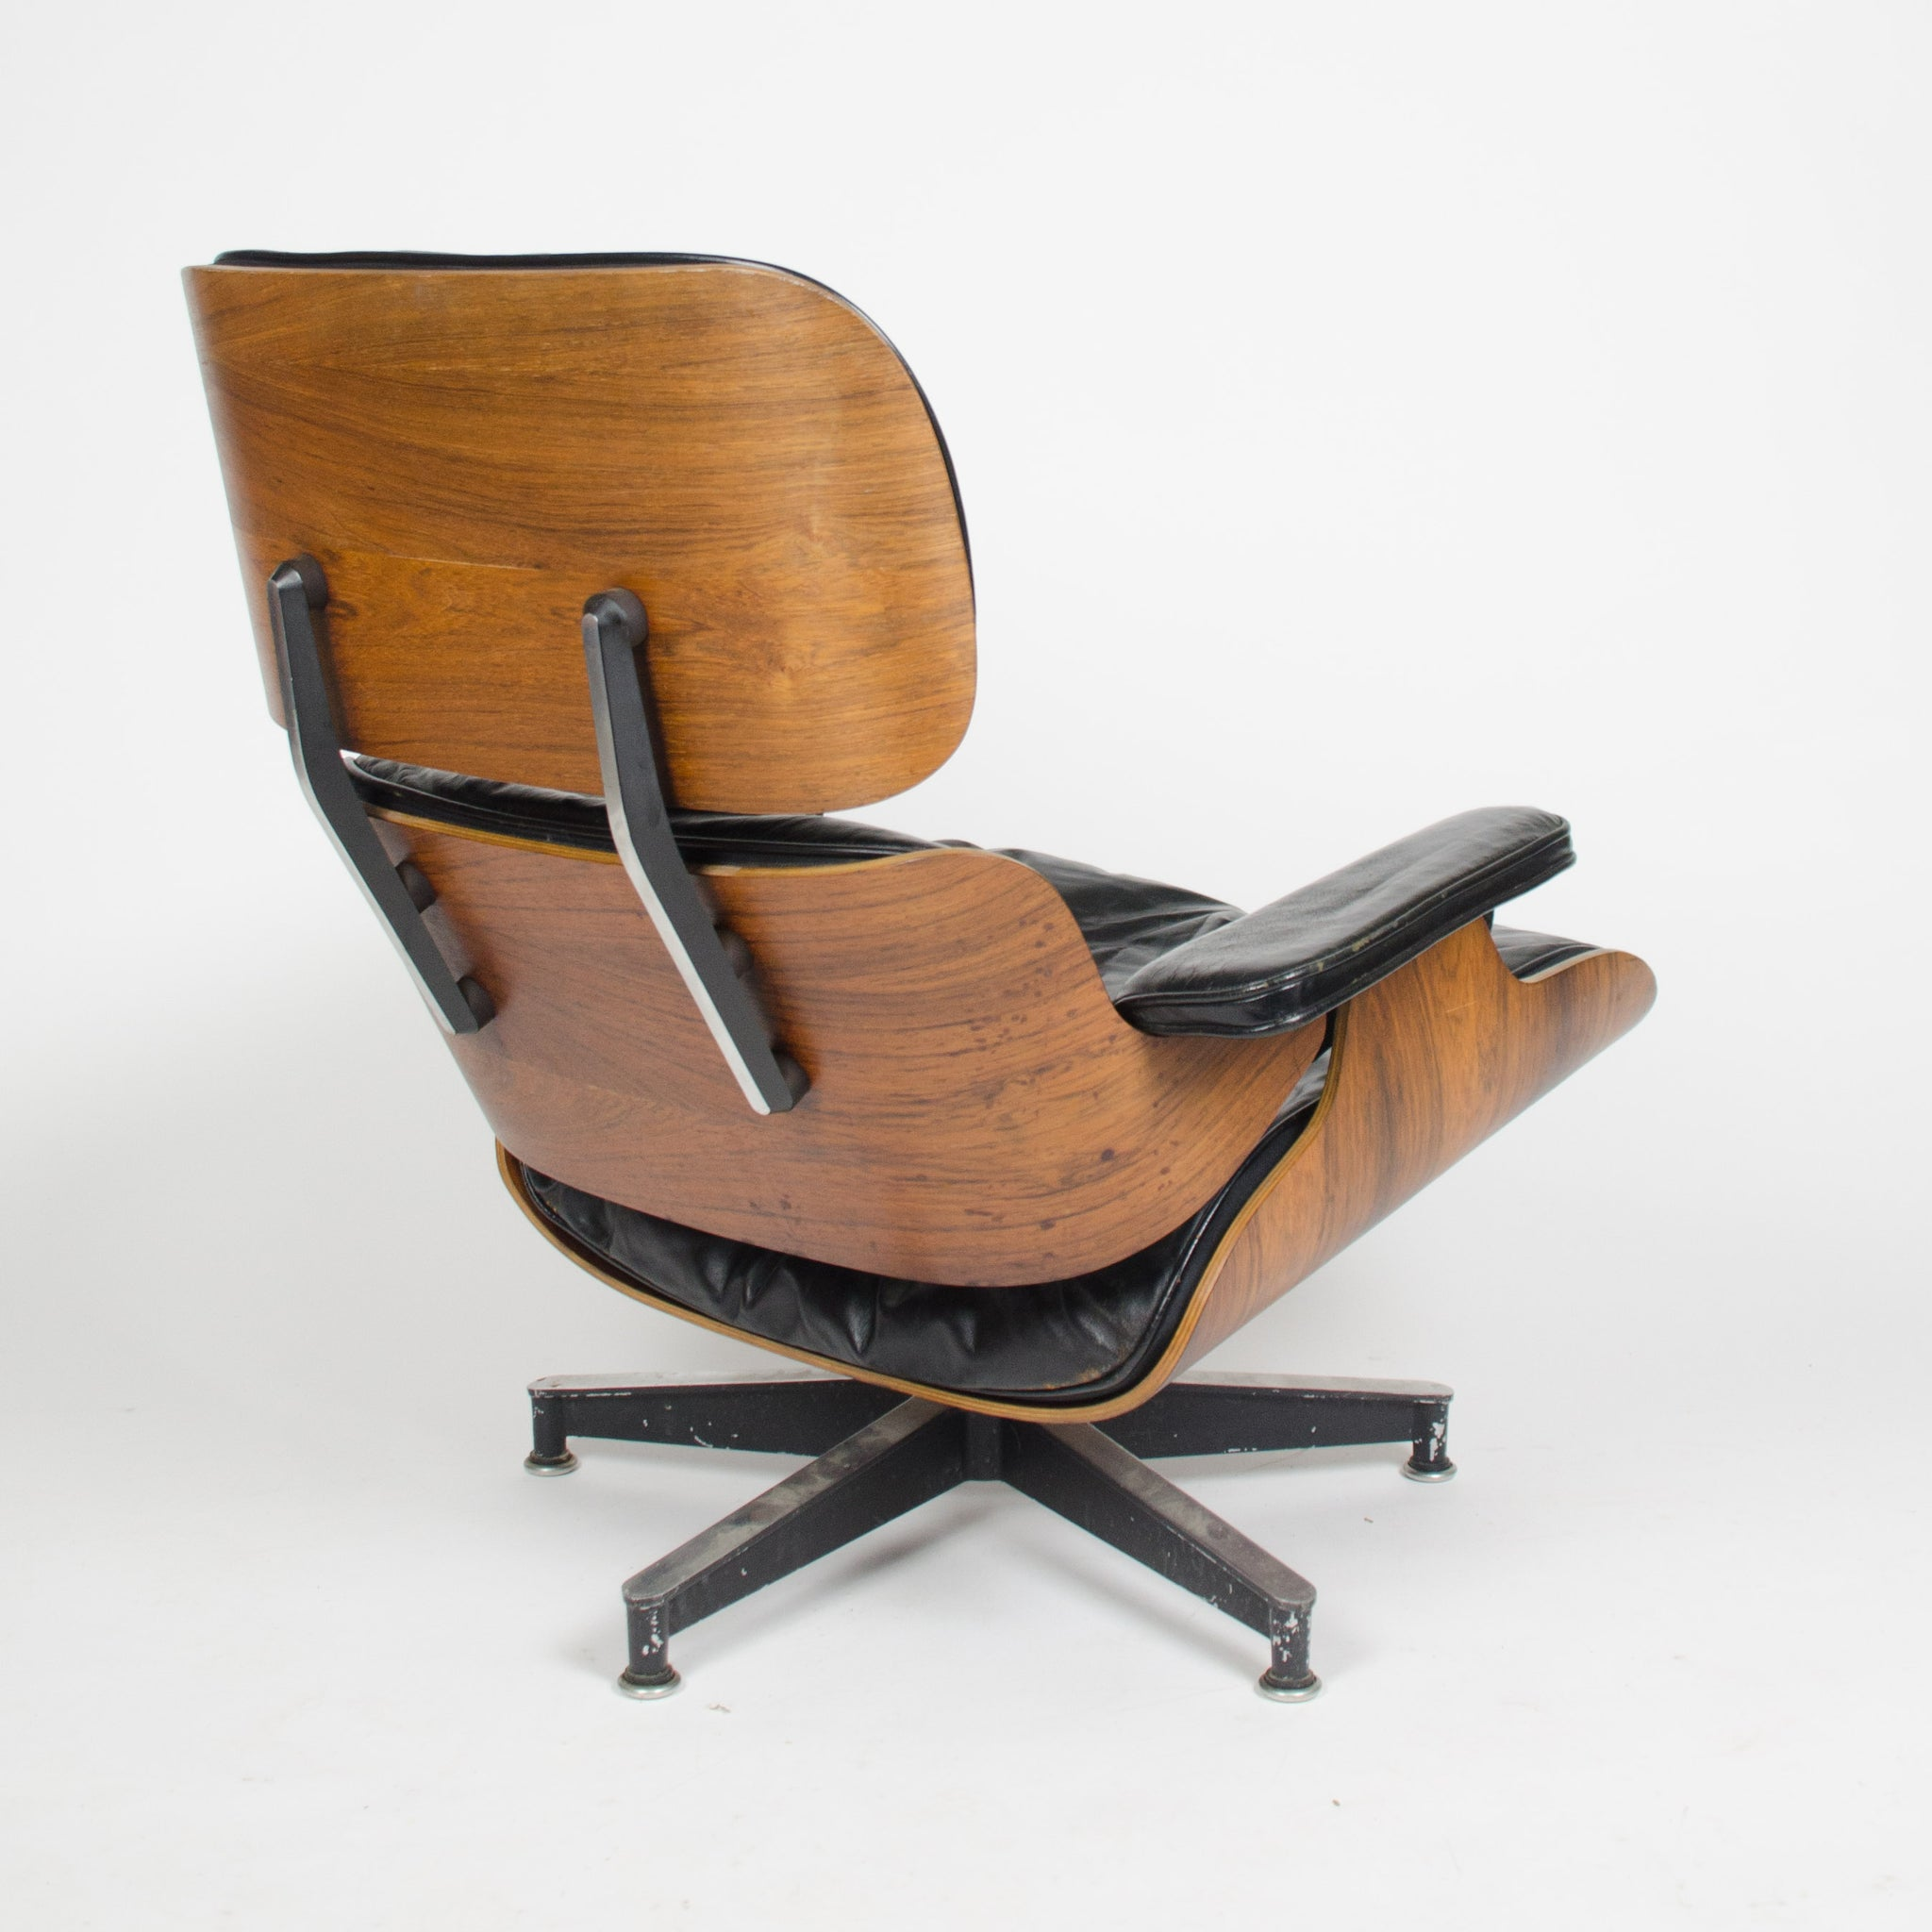 SOLD 1956 Herman Miller Eames Lounge Chair w Swivel Ottoman Boots + 2 hole armrests